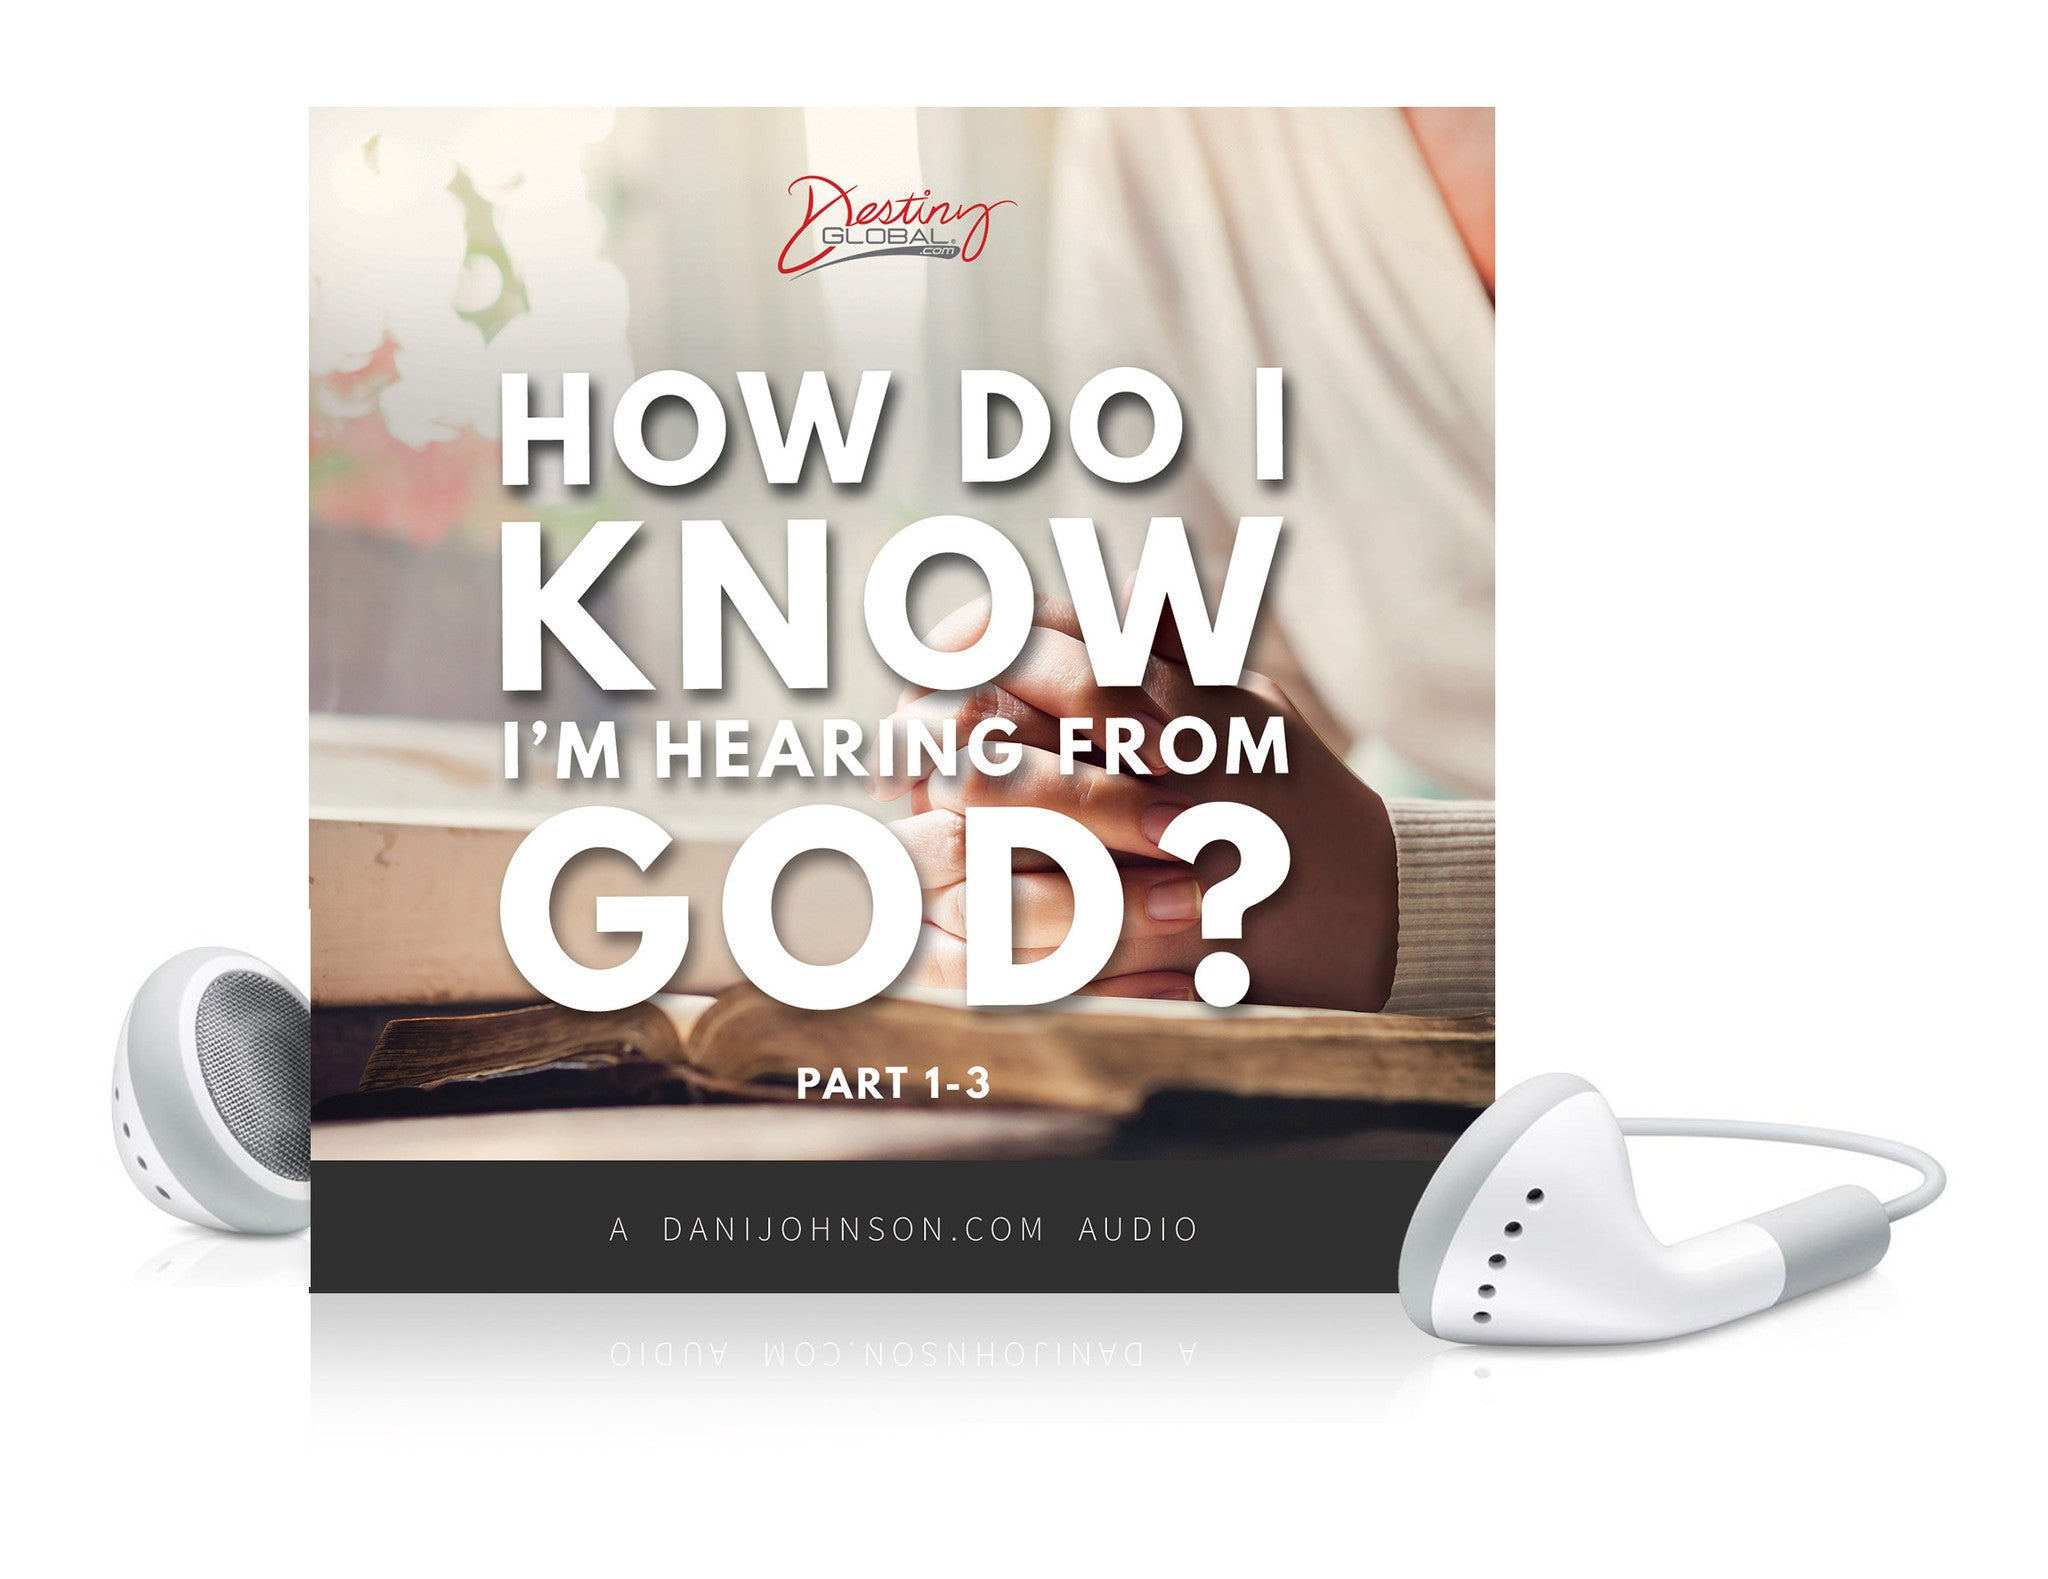 How Do I Know I'm Hearing From God?